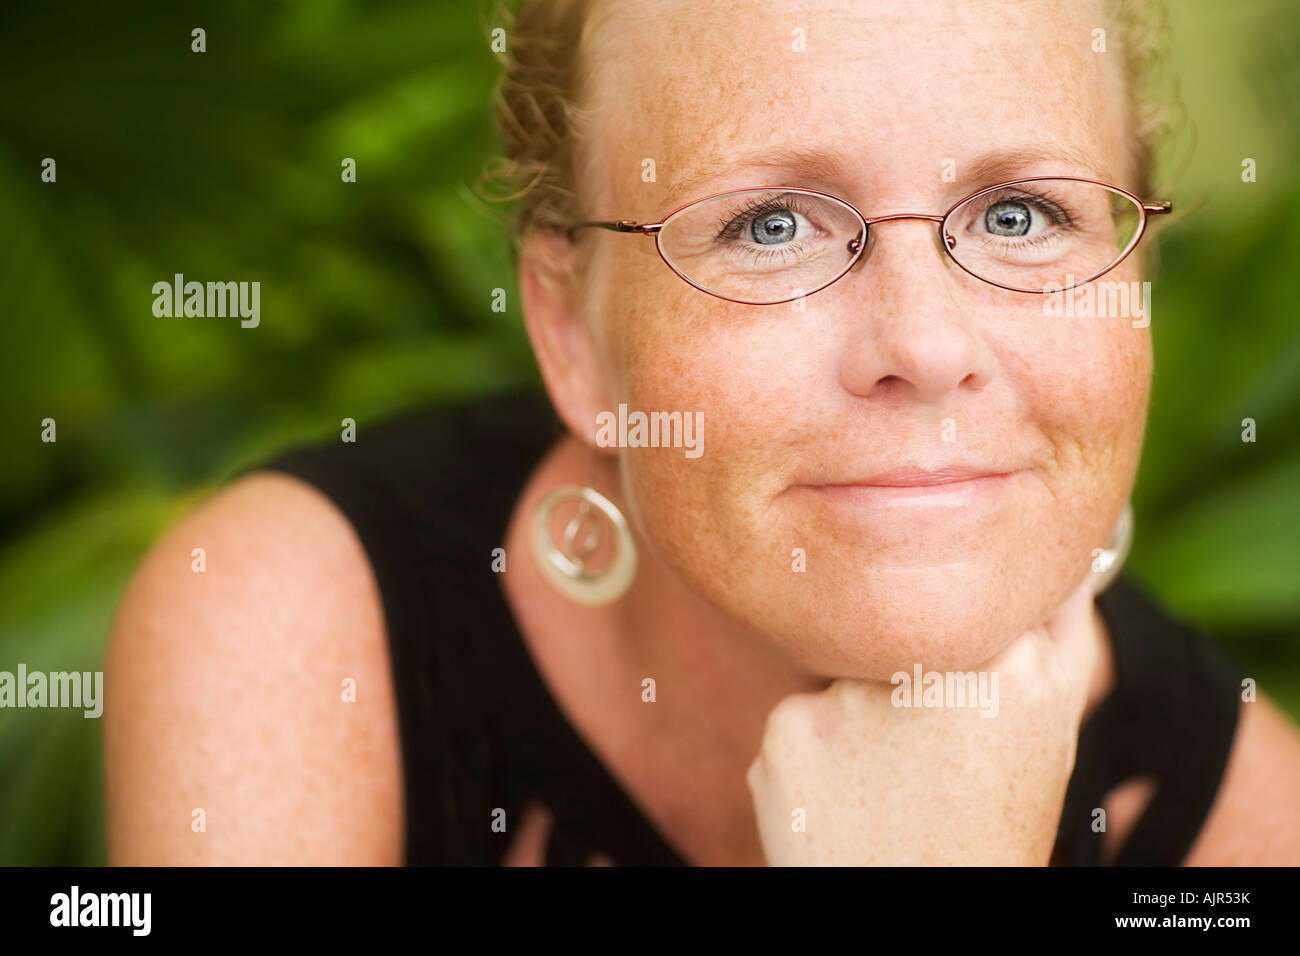 Mid adult woman smiling and posing for picture - Stock Image